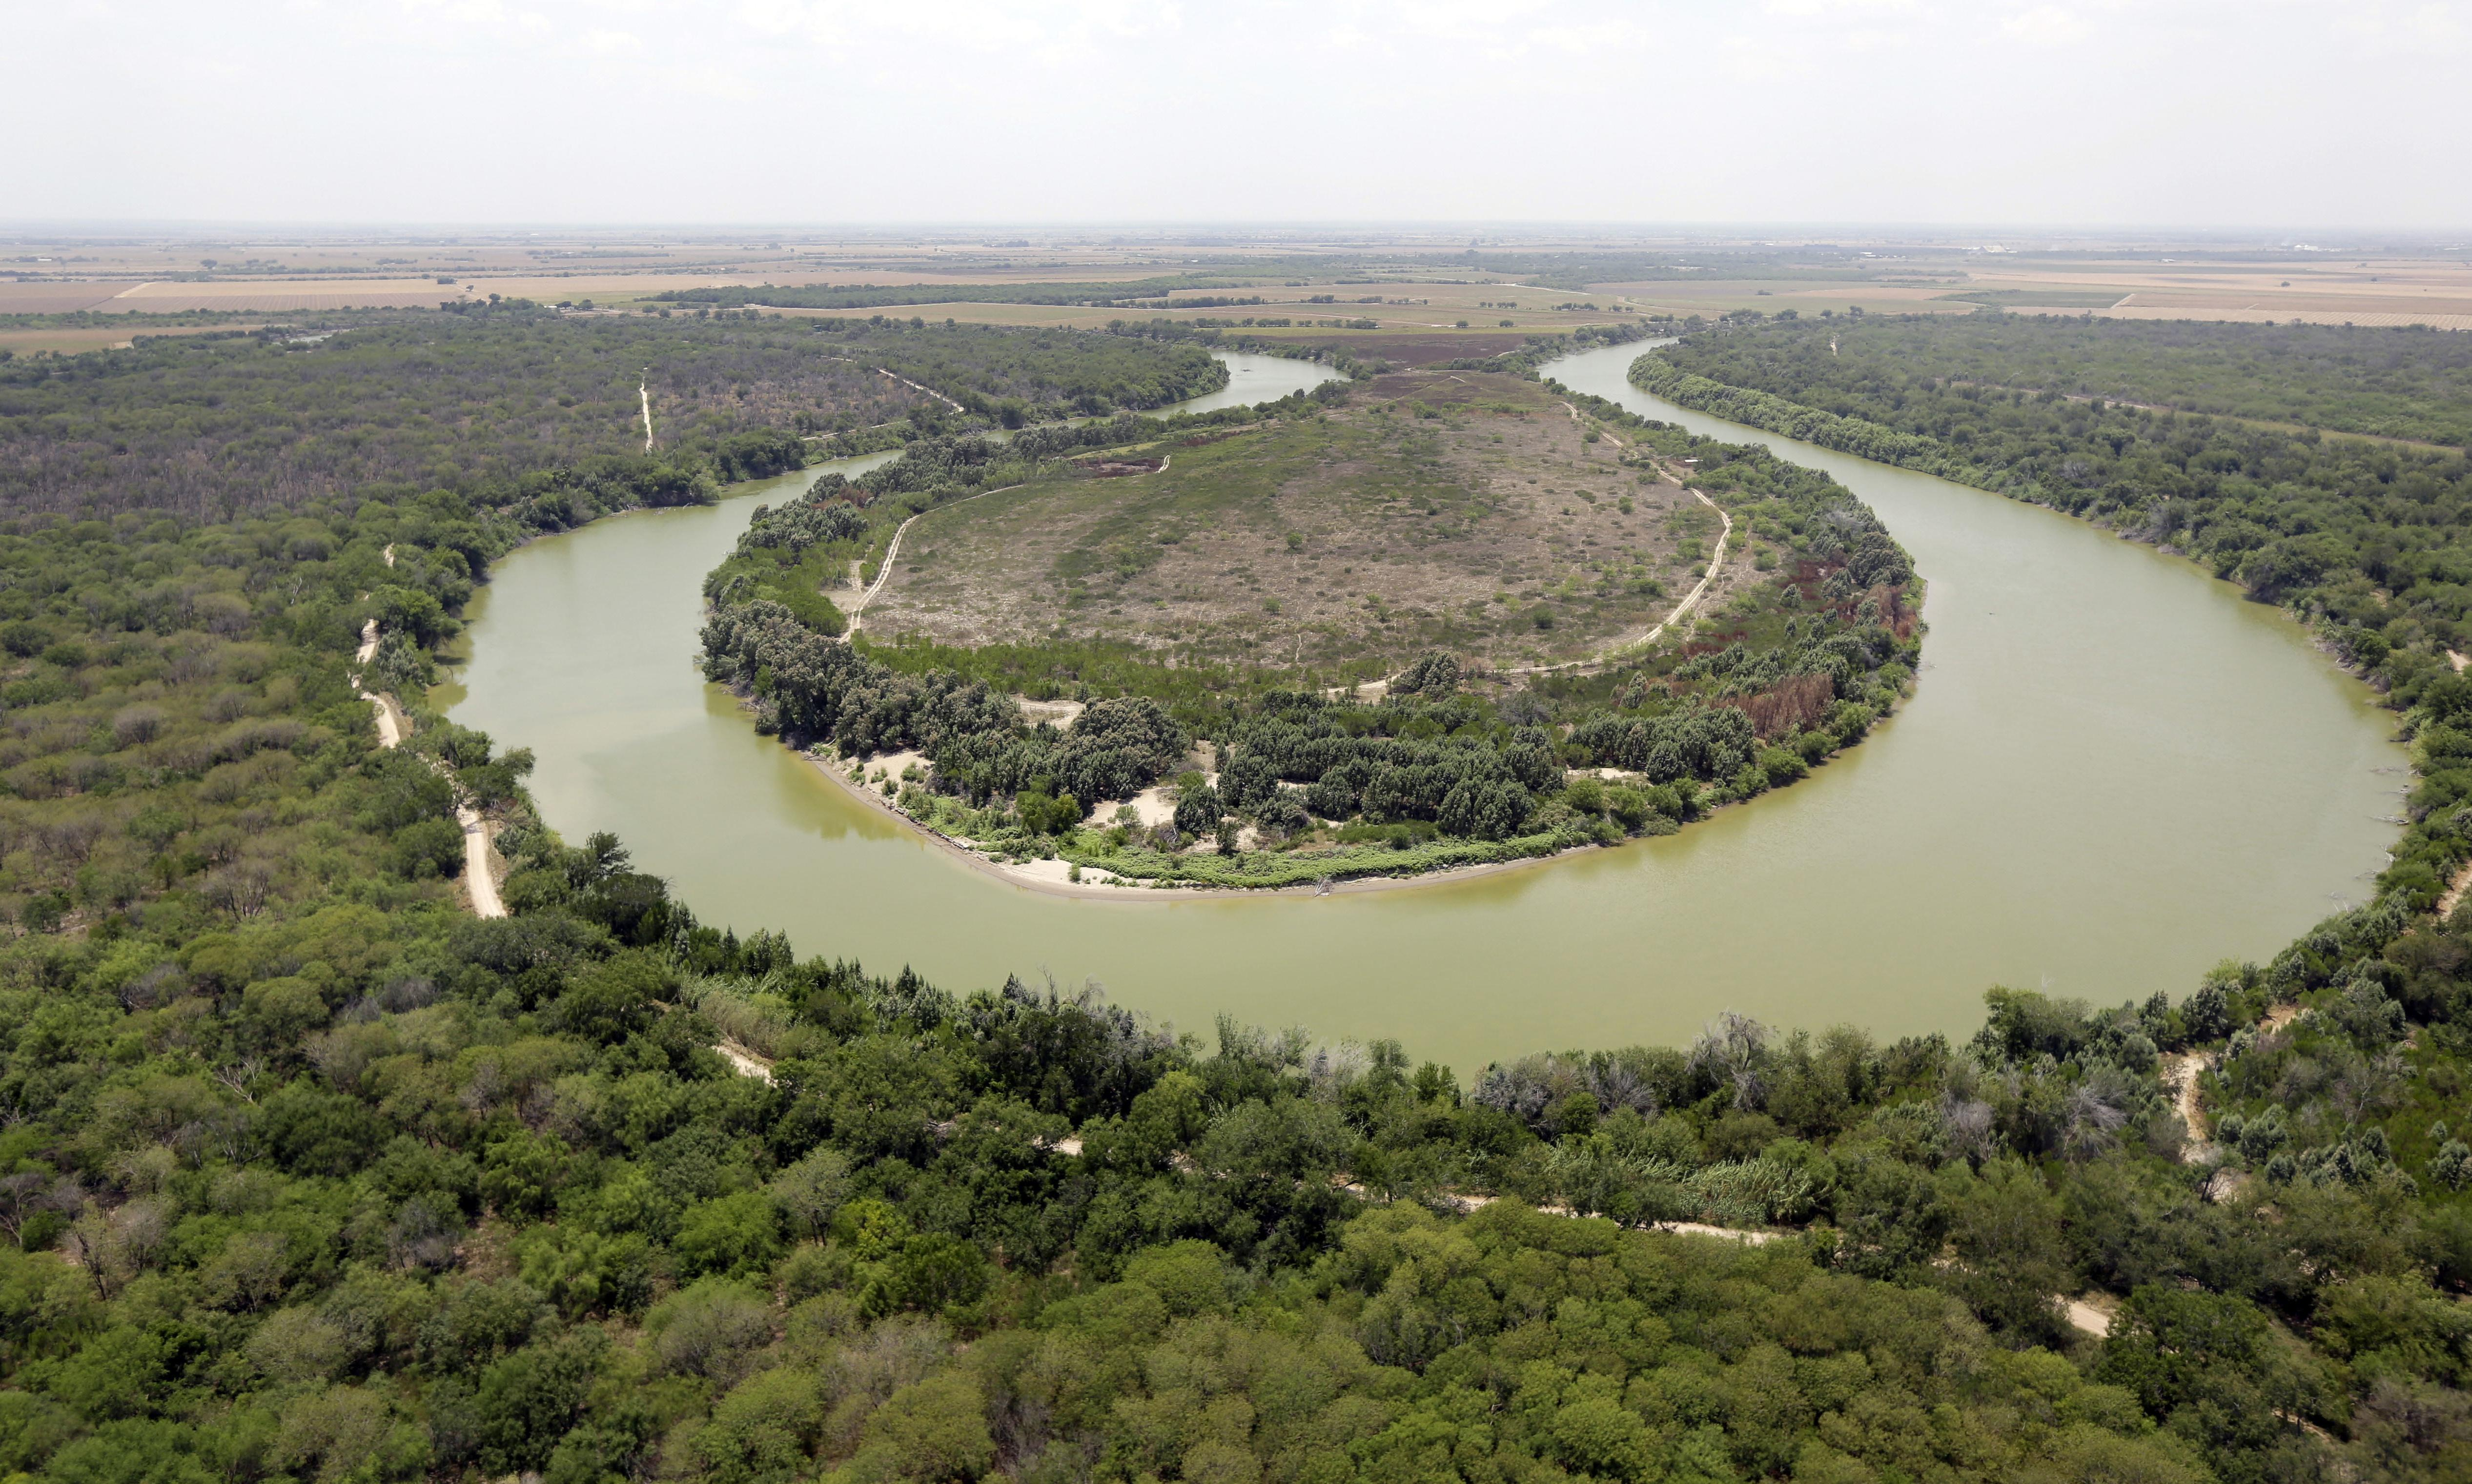 Border patrol finds four bodies near US-Mexico border in Texas